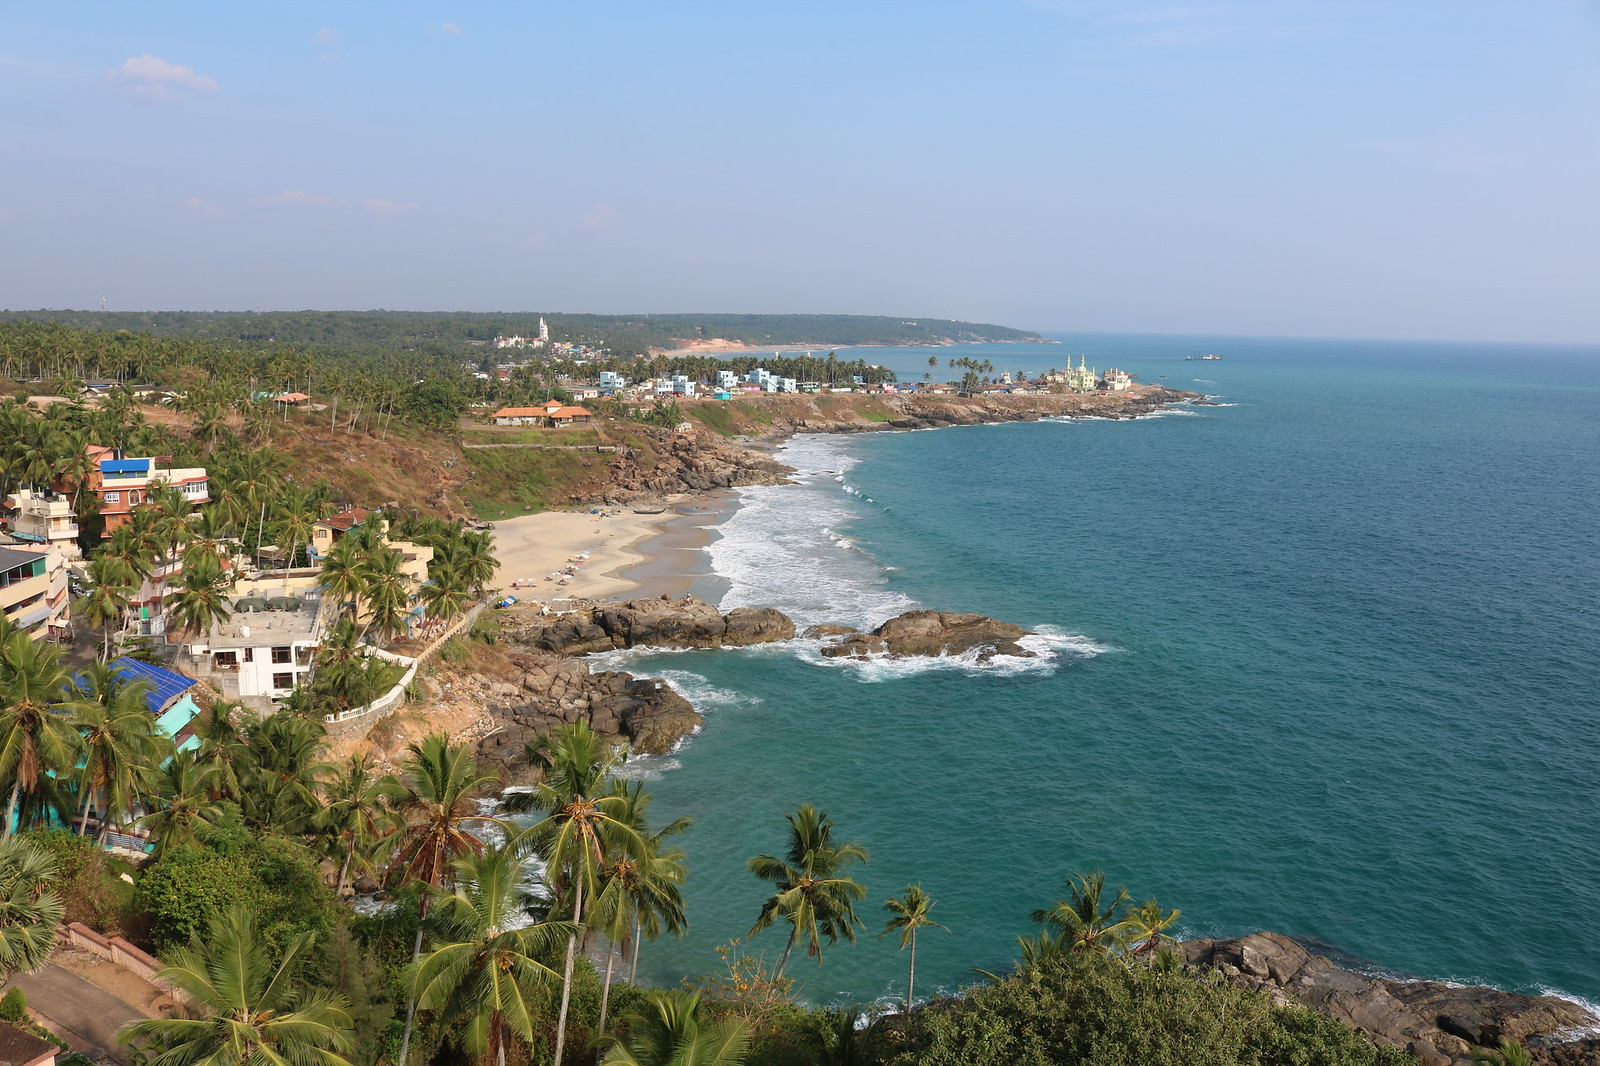 View from Kovalam Lighthouse - LeftSide